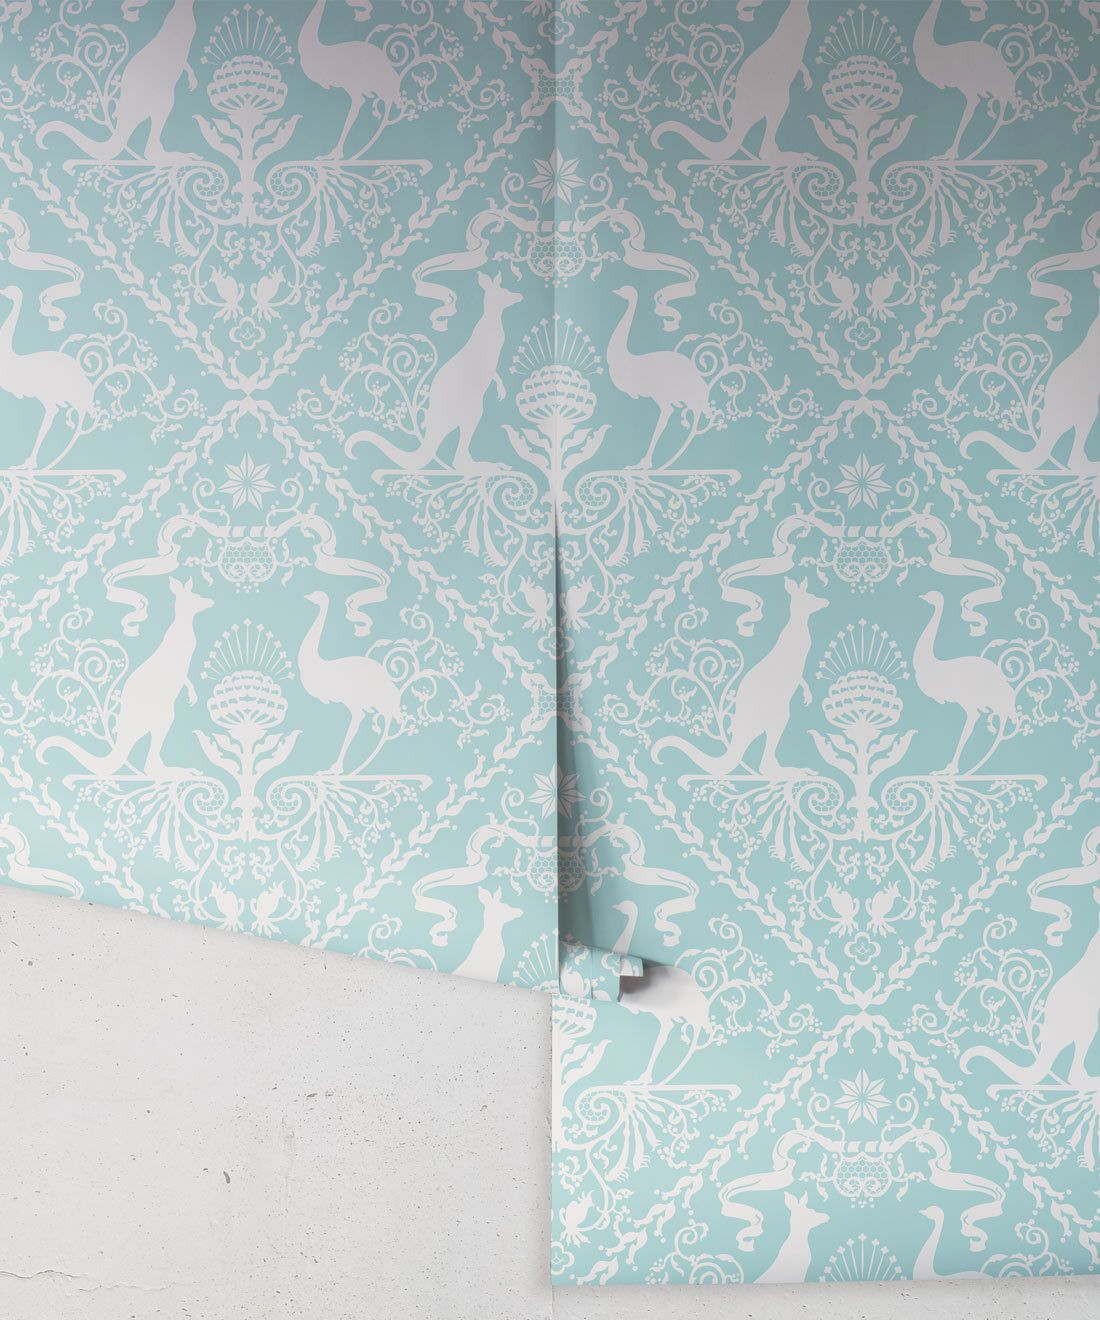 In Australia We Trust Cockatoo• Australian Wallpaper • Australian Coat of Arms • Milton & King USA • Aqua Wallpaper Rolls